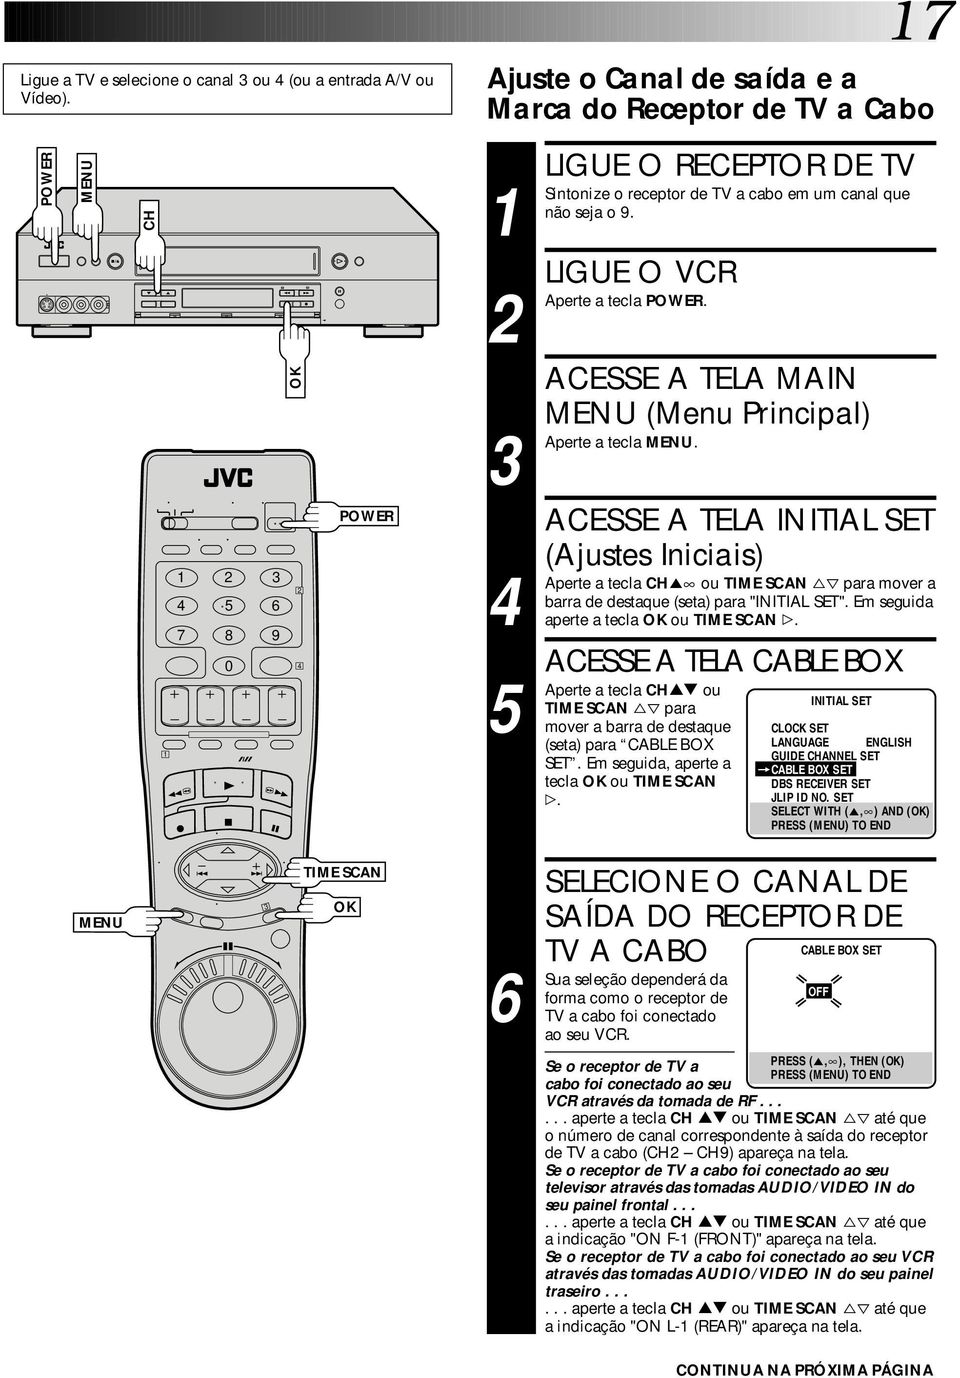 LIGUE O VCR a tecla POWER. ACESSE A TELA MAIN (Menu Principal) a tecla.